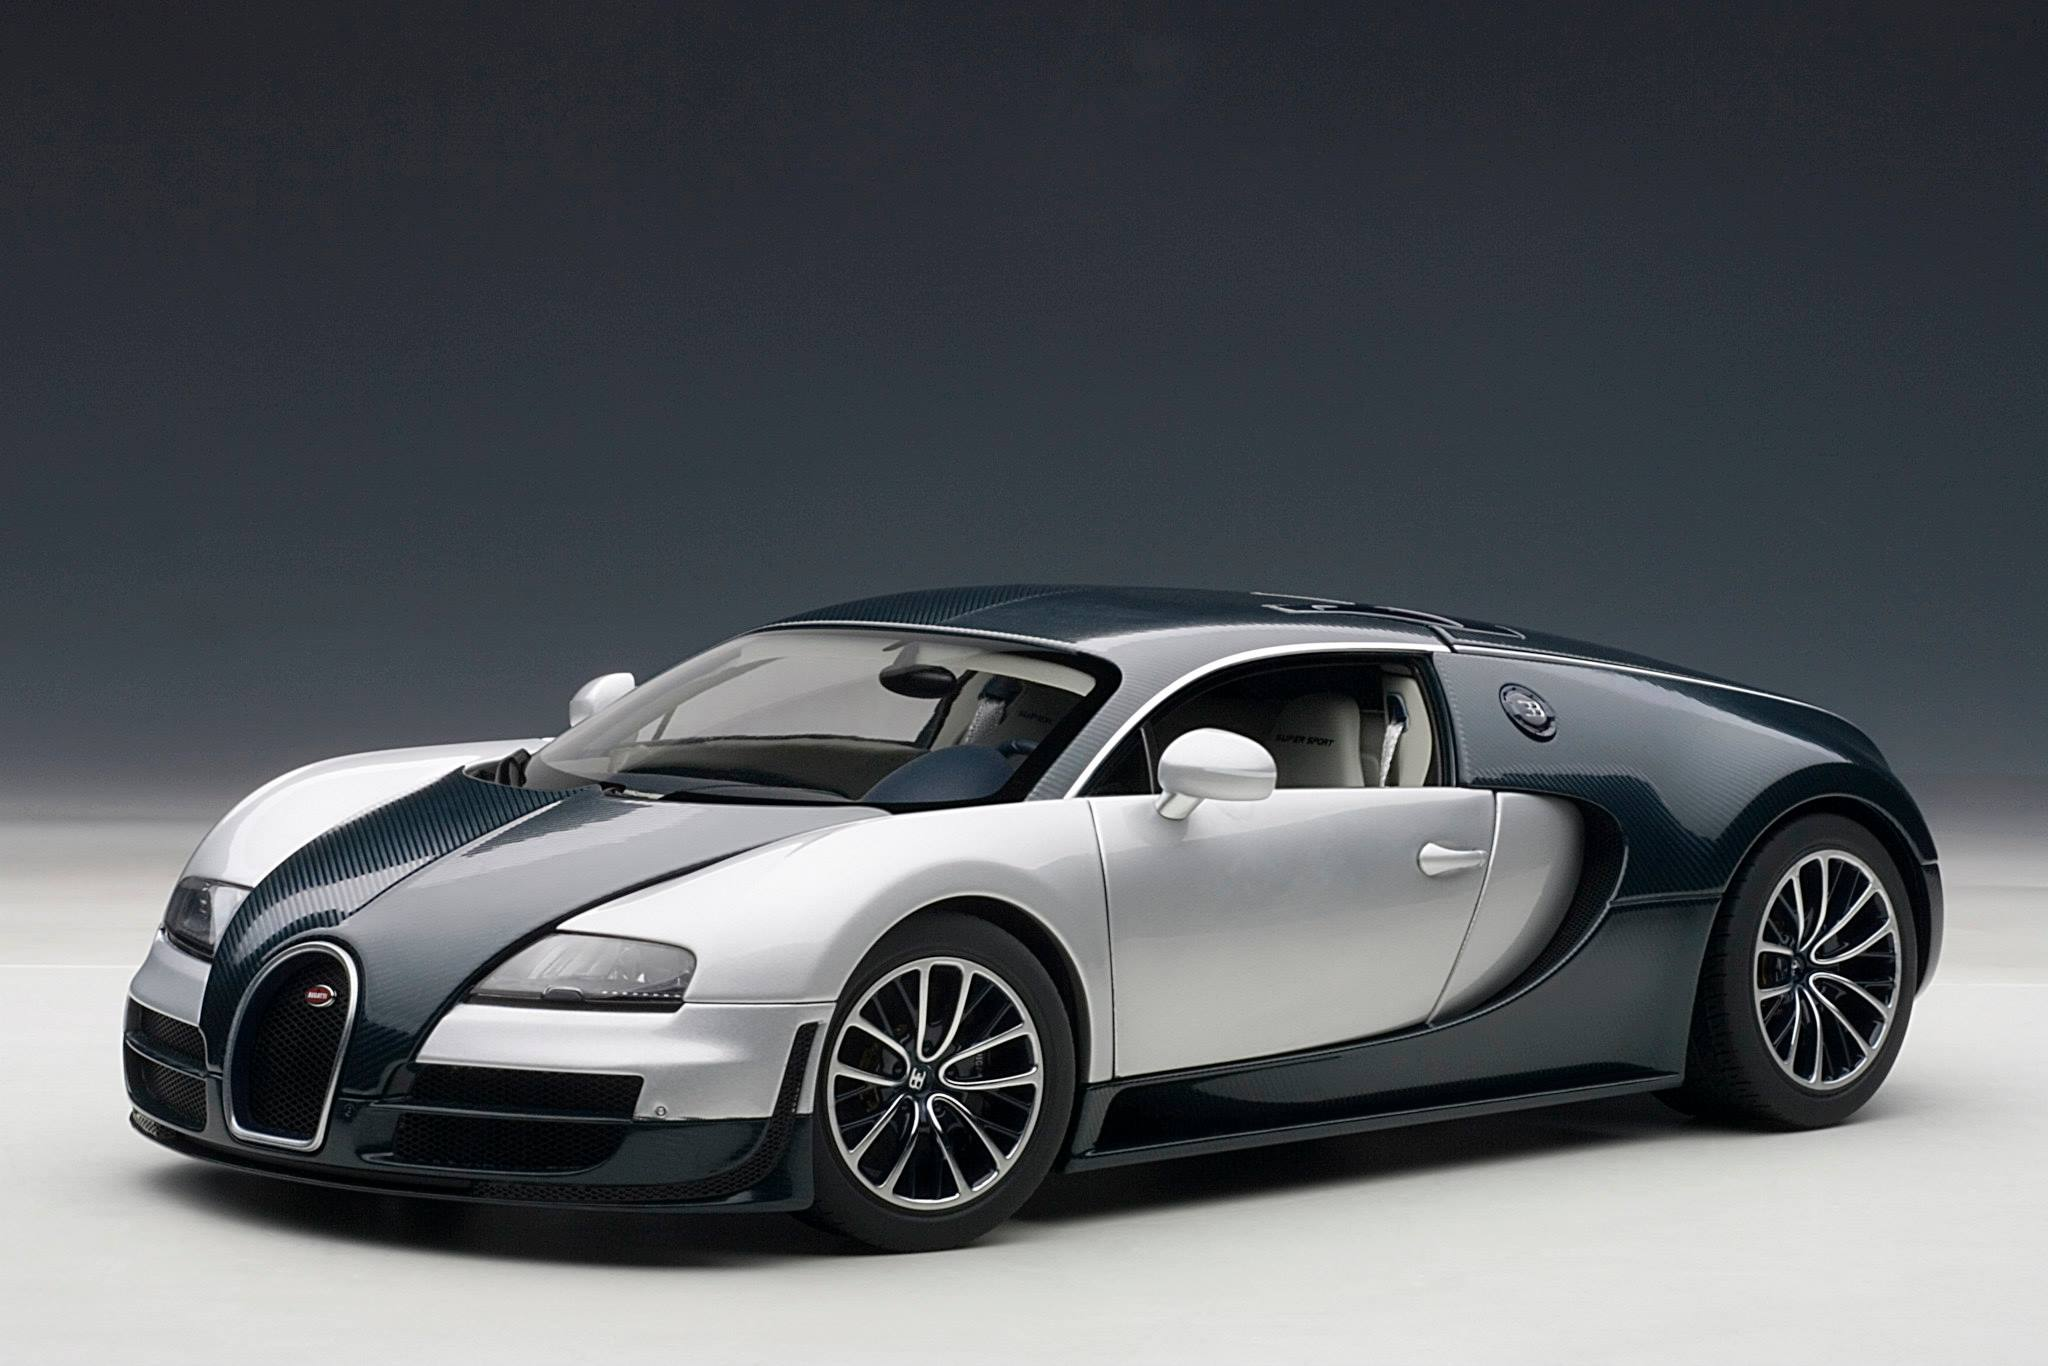 upcoming bugatti veyron super sport models in 1 18 scale. Black Bedroom Furniture Sets. Home Design Ideas